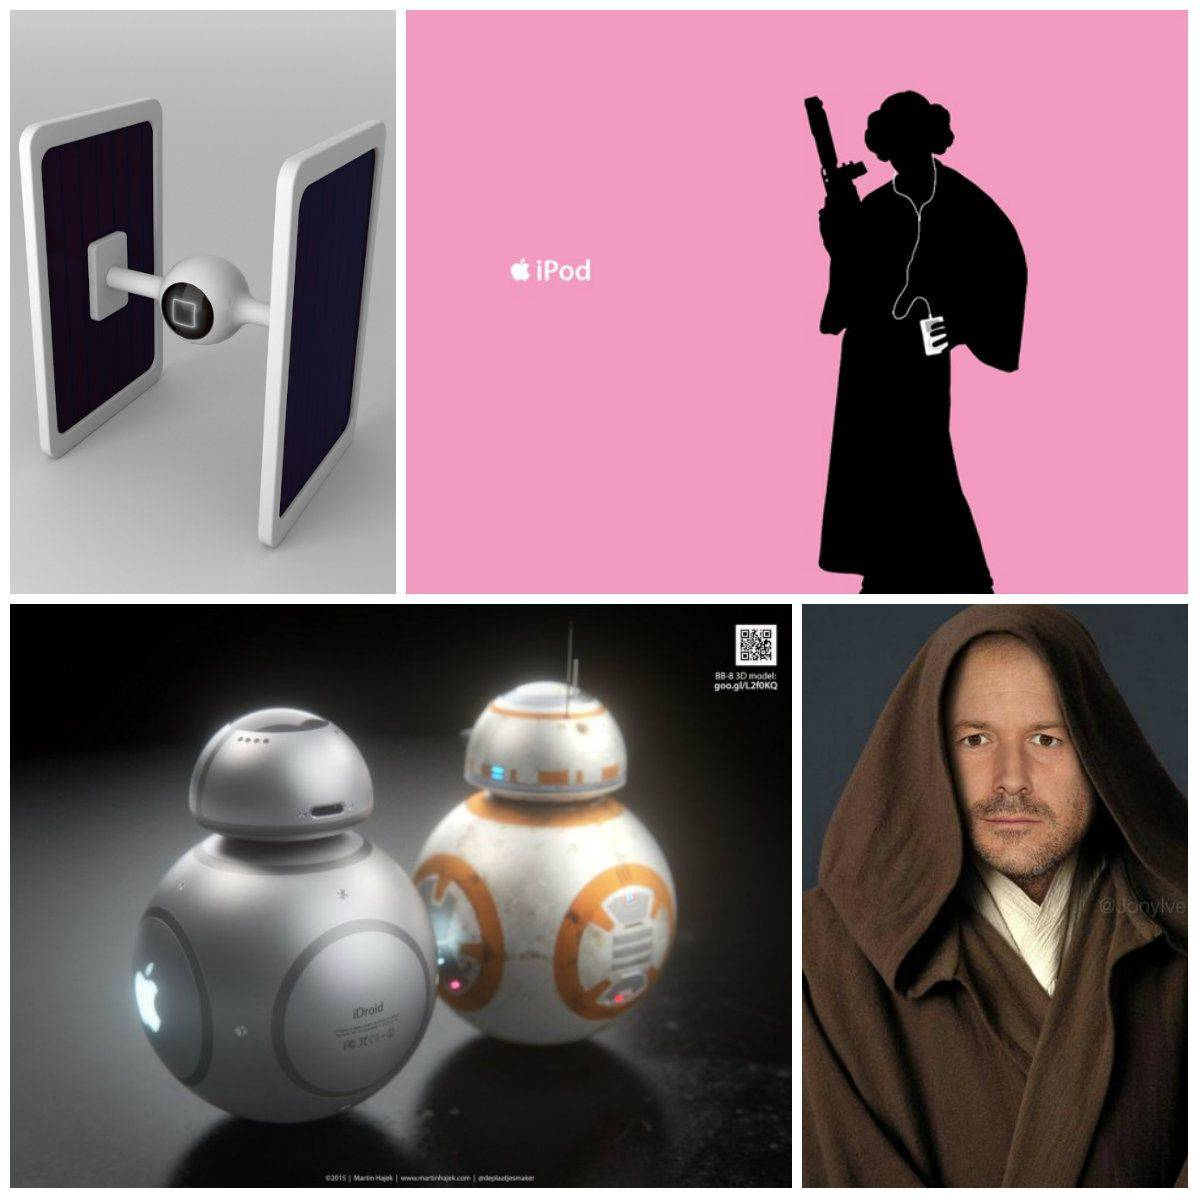 Apple and Star Wars: A match made in a galaxy far, far away?